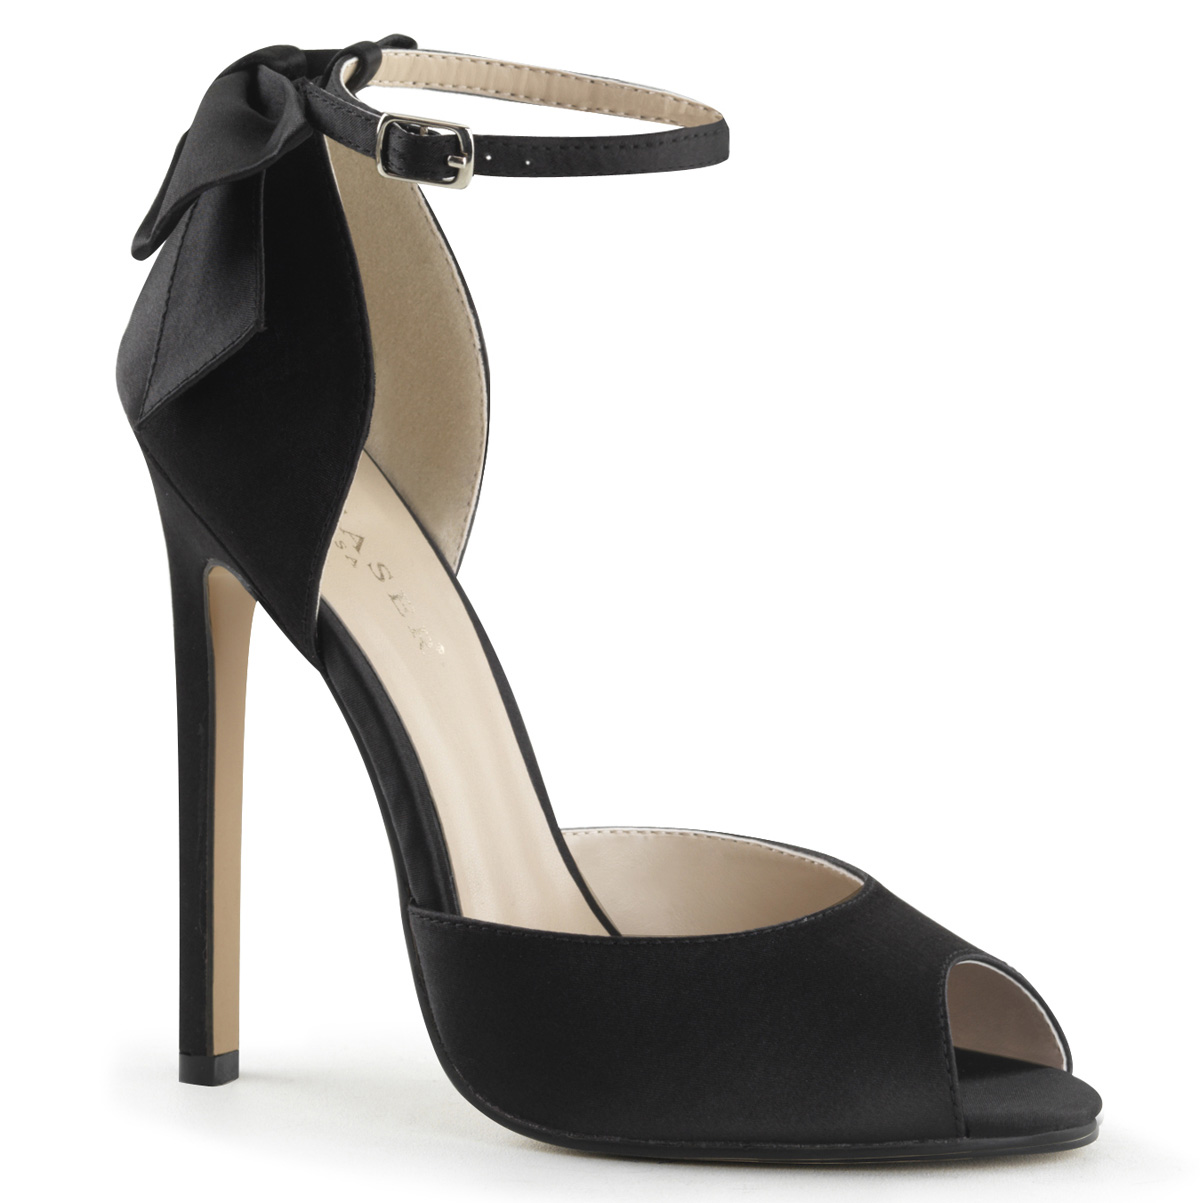 a1c6450396f Pleaser PEEP Toe High HEELS PUMPS Ankle Strap Bow Satin Shoes -16 Black 9